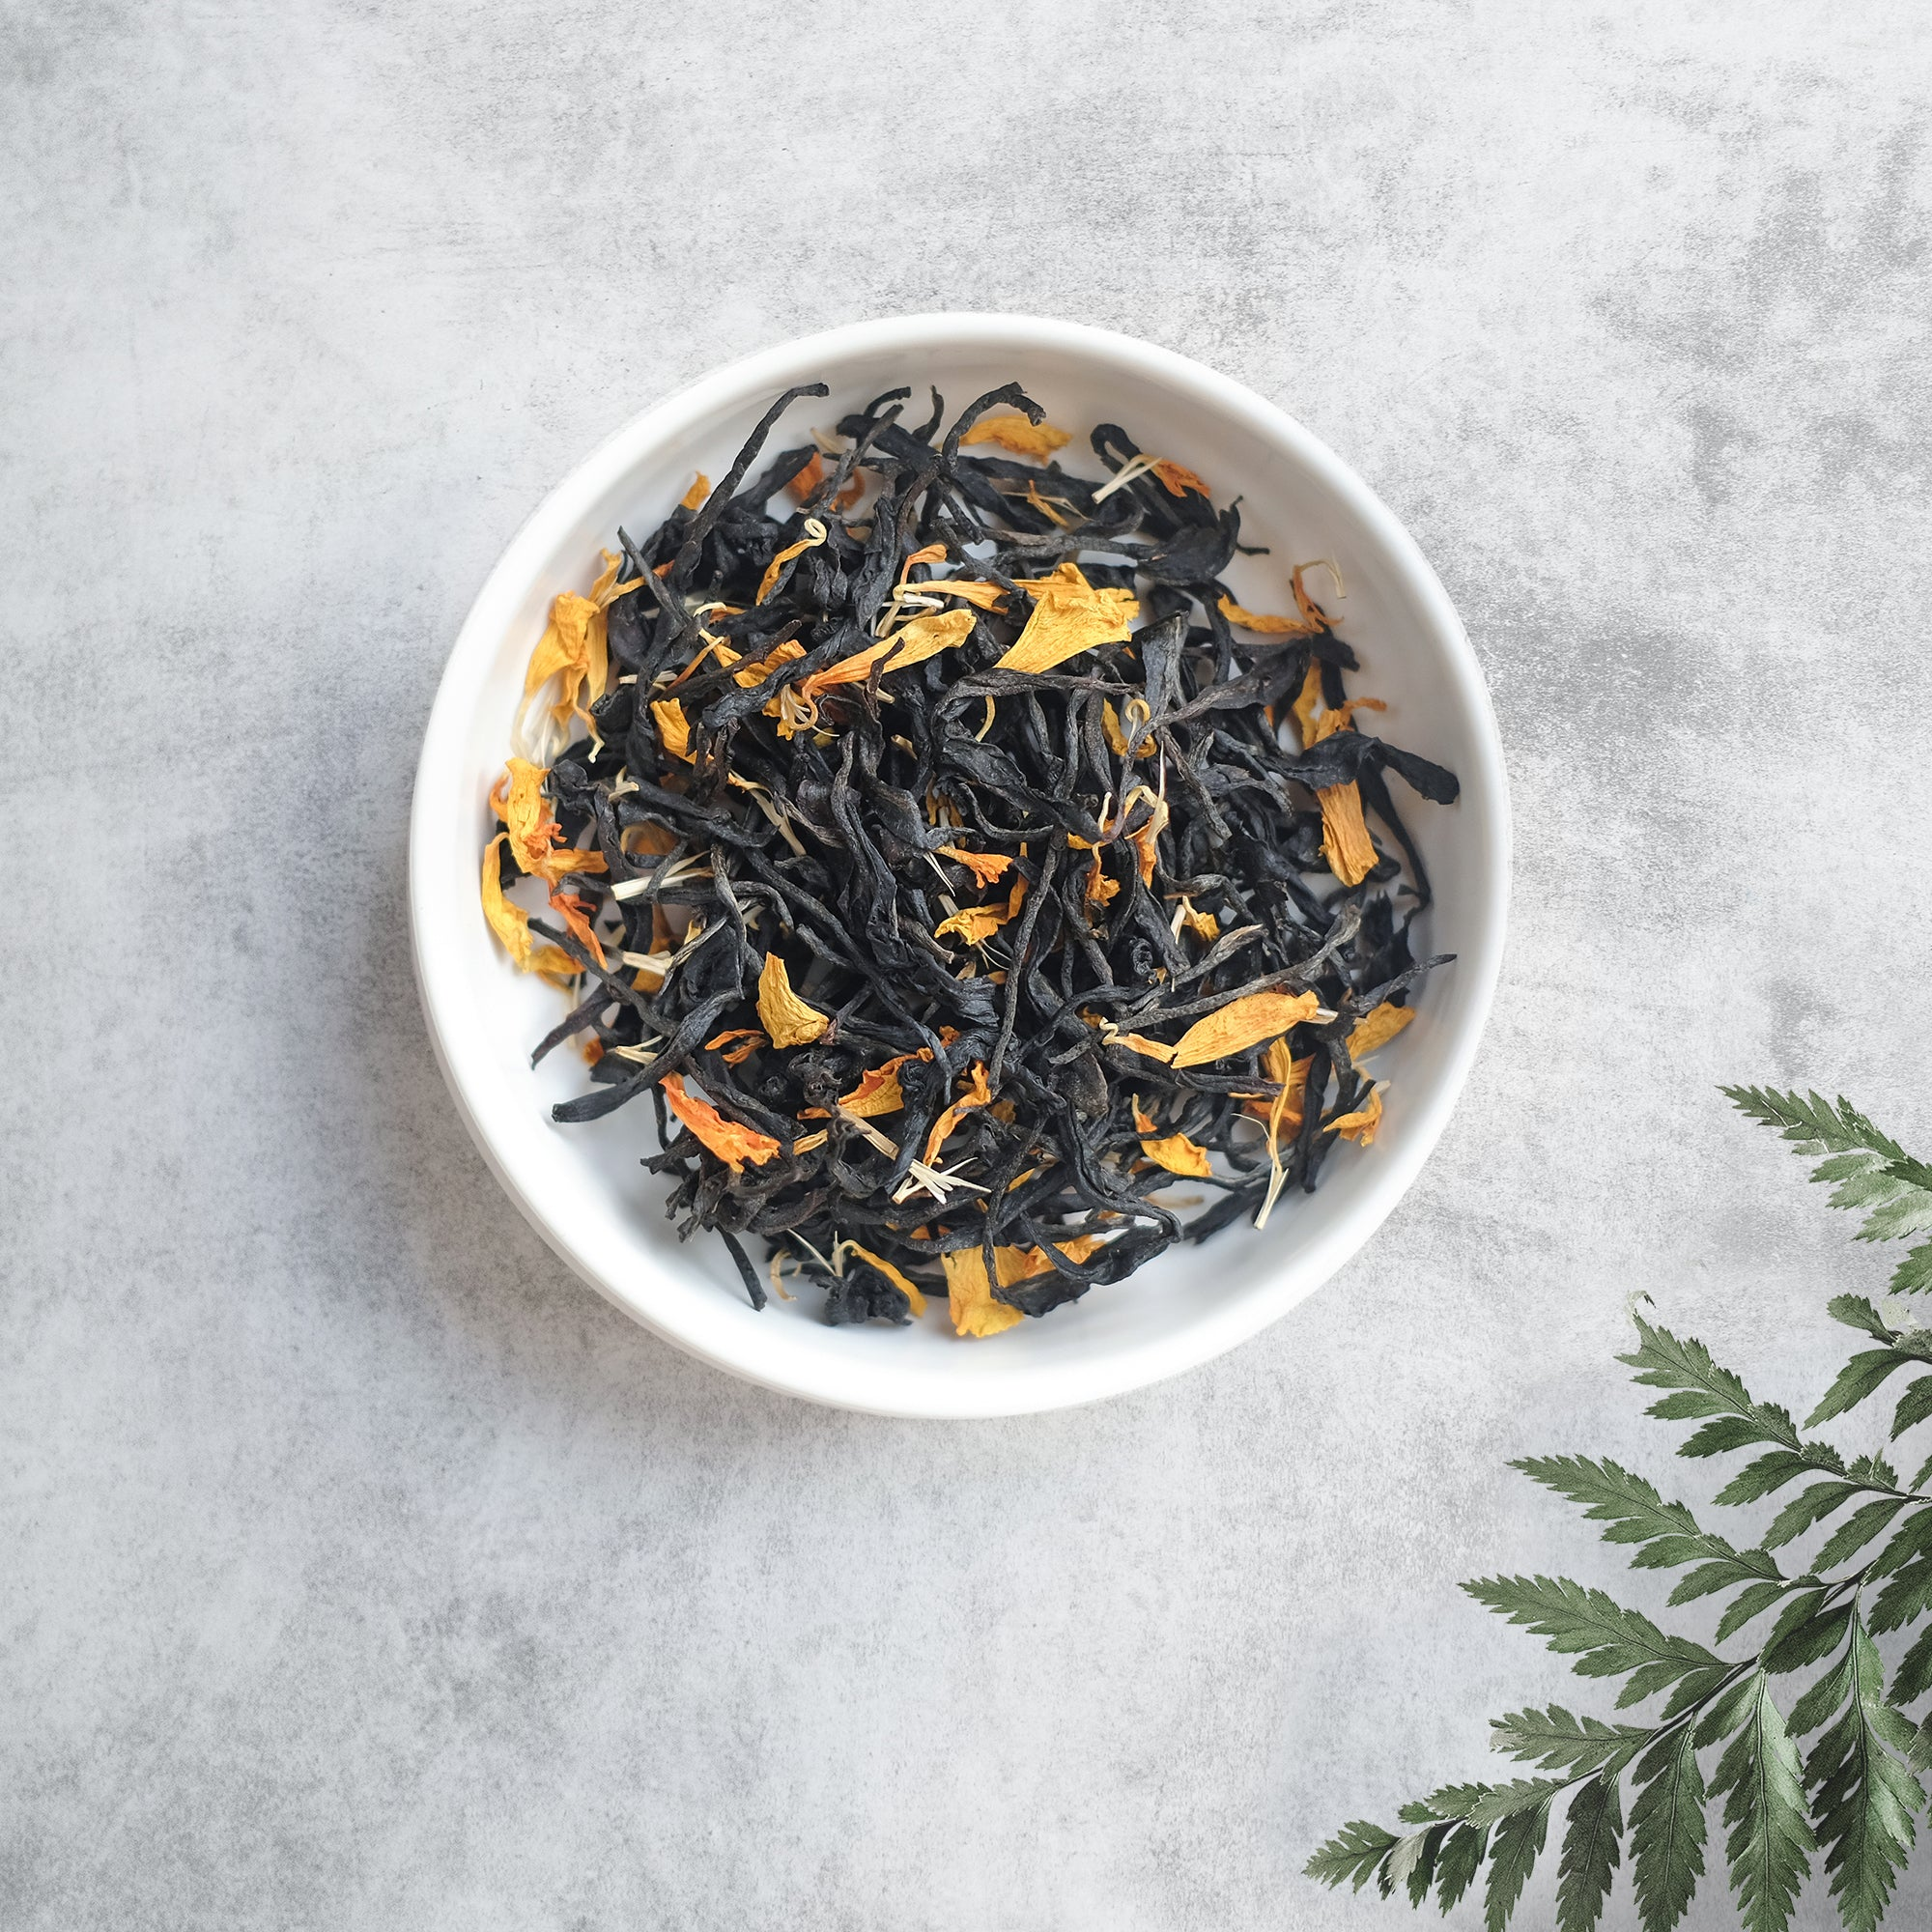 Mango Passion fruit Black Tea - KOMOREBI